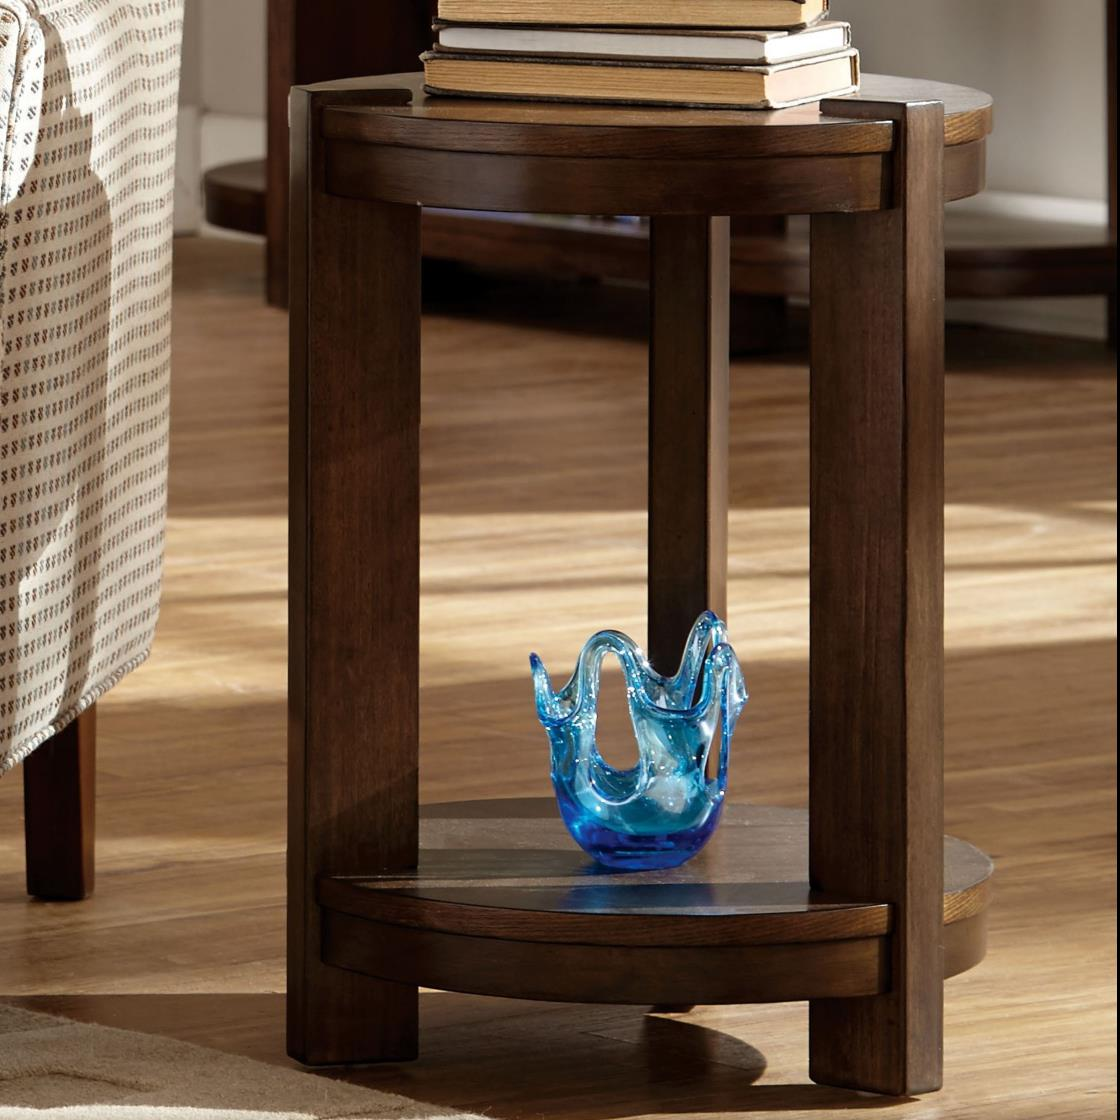 Broyhill Furniture Ryleigh Chairside Table - Item Number: 3185-004